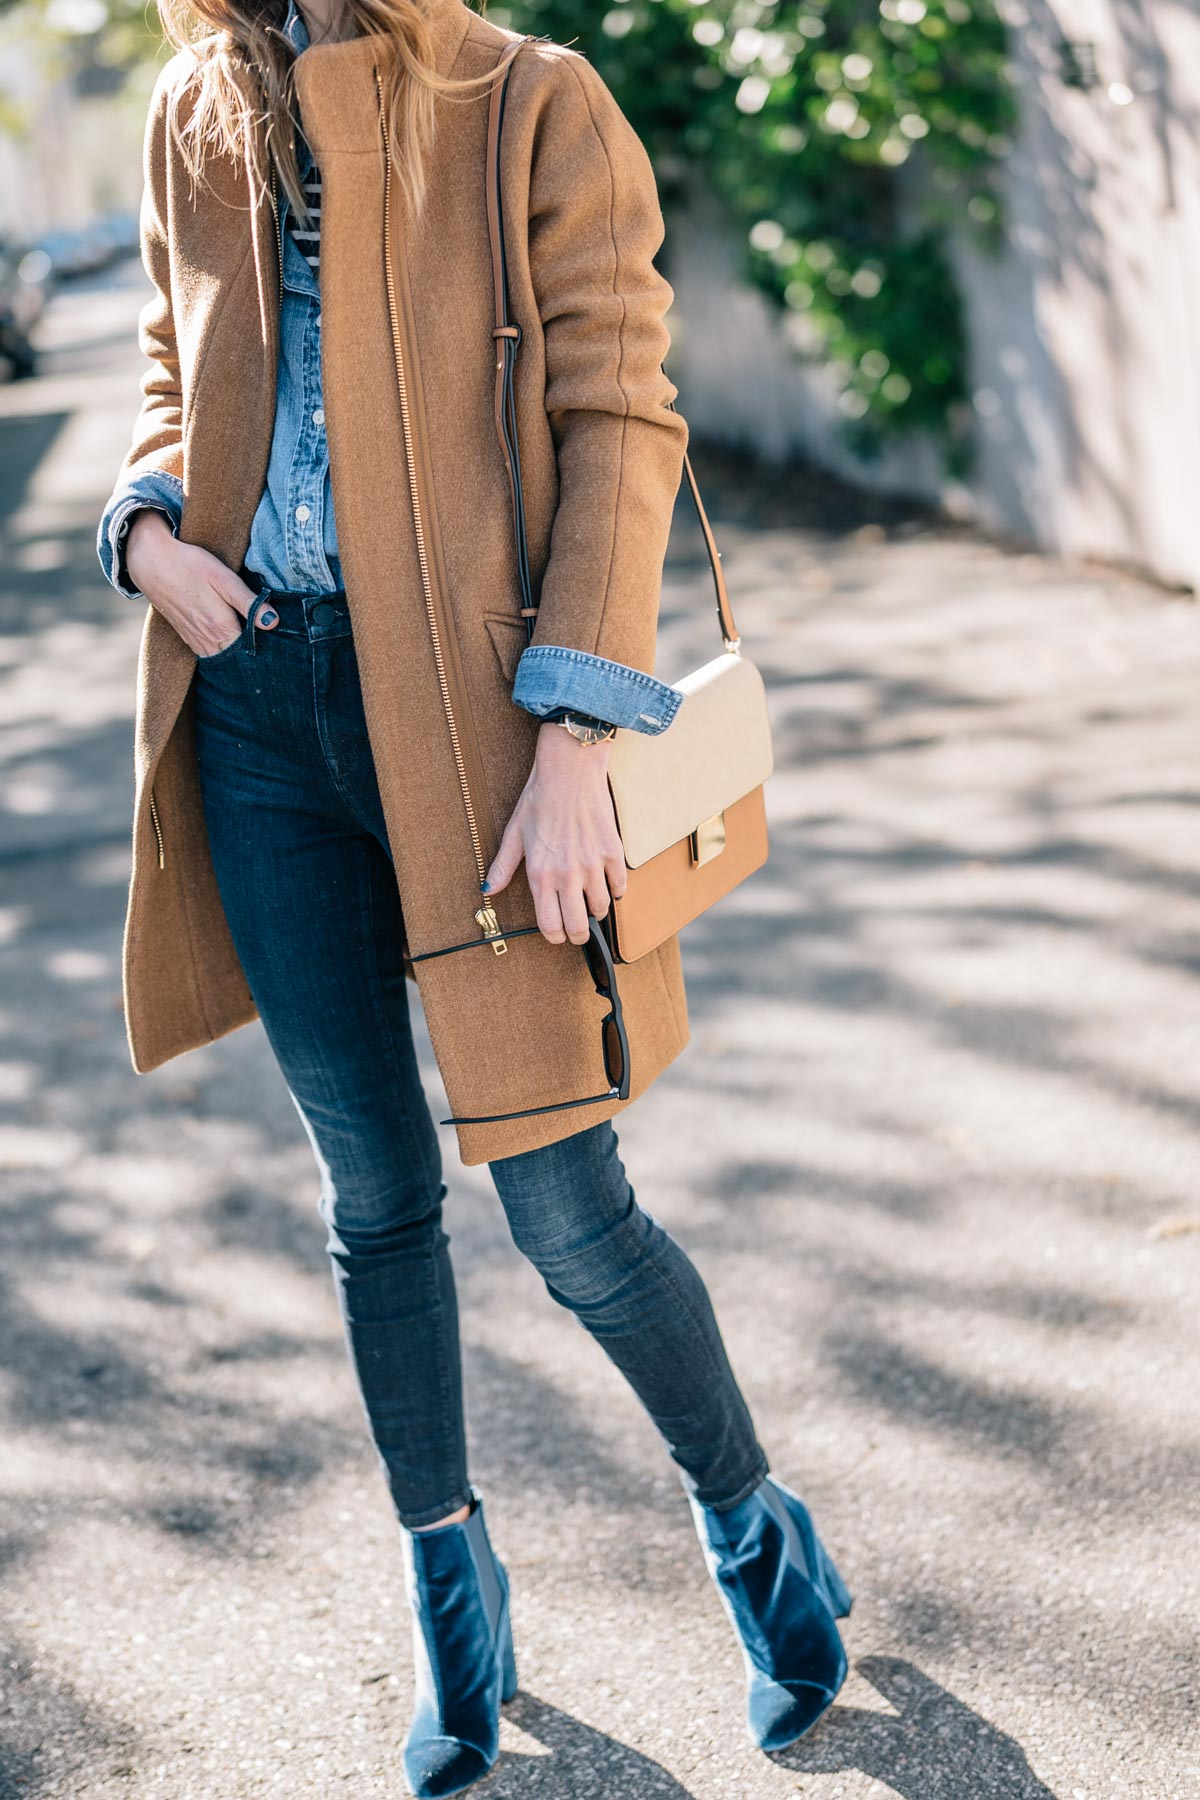 Jess Ann Kirby shows how to layer in a J.Crew Stadium Cloth Coat, AYR Skinny Jeans, Velvet Booties and Leather Crossbody